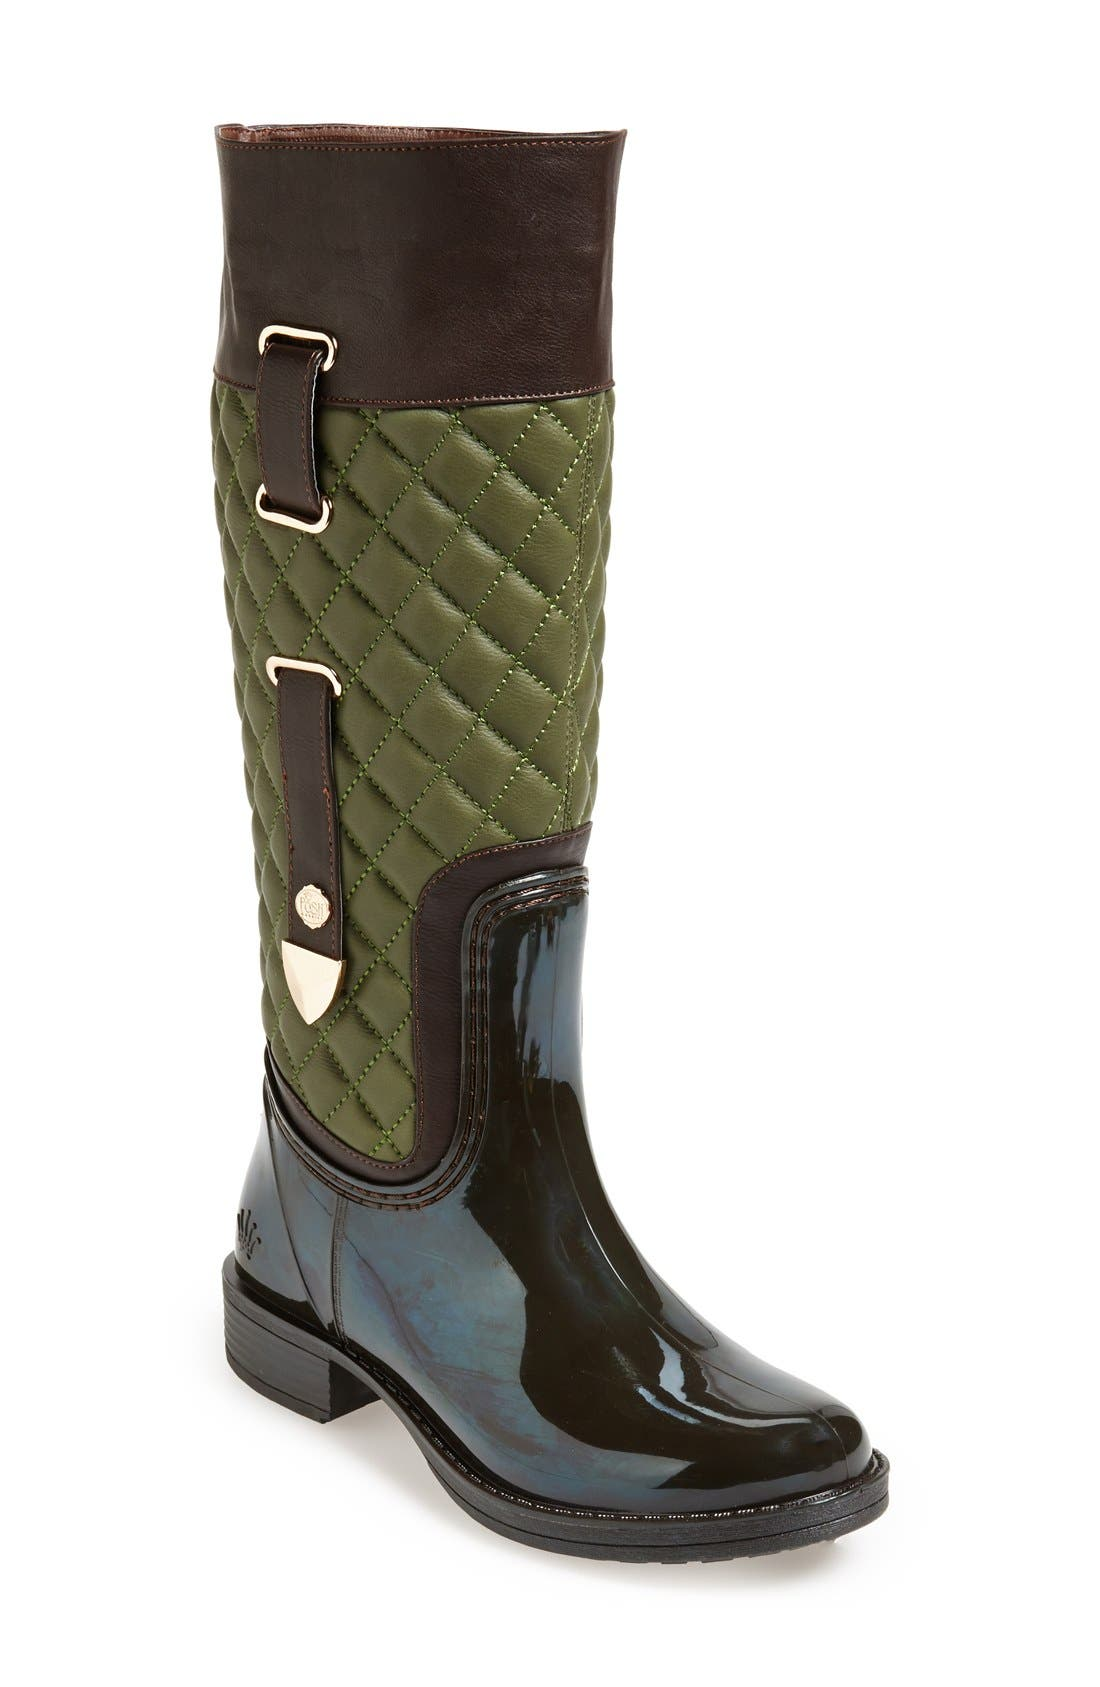 Alternate Image 1 Selected - Posh Wellies 'Quizz' Quilted Tall Rain Boot (Women)